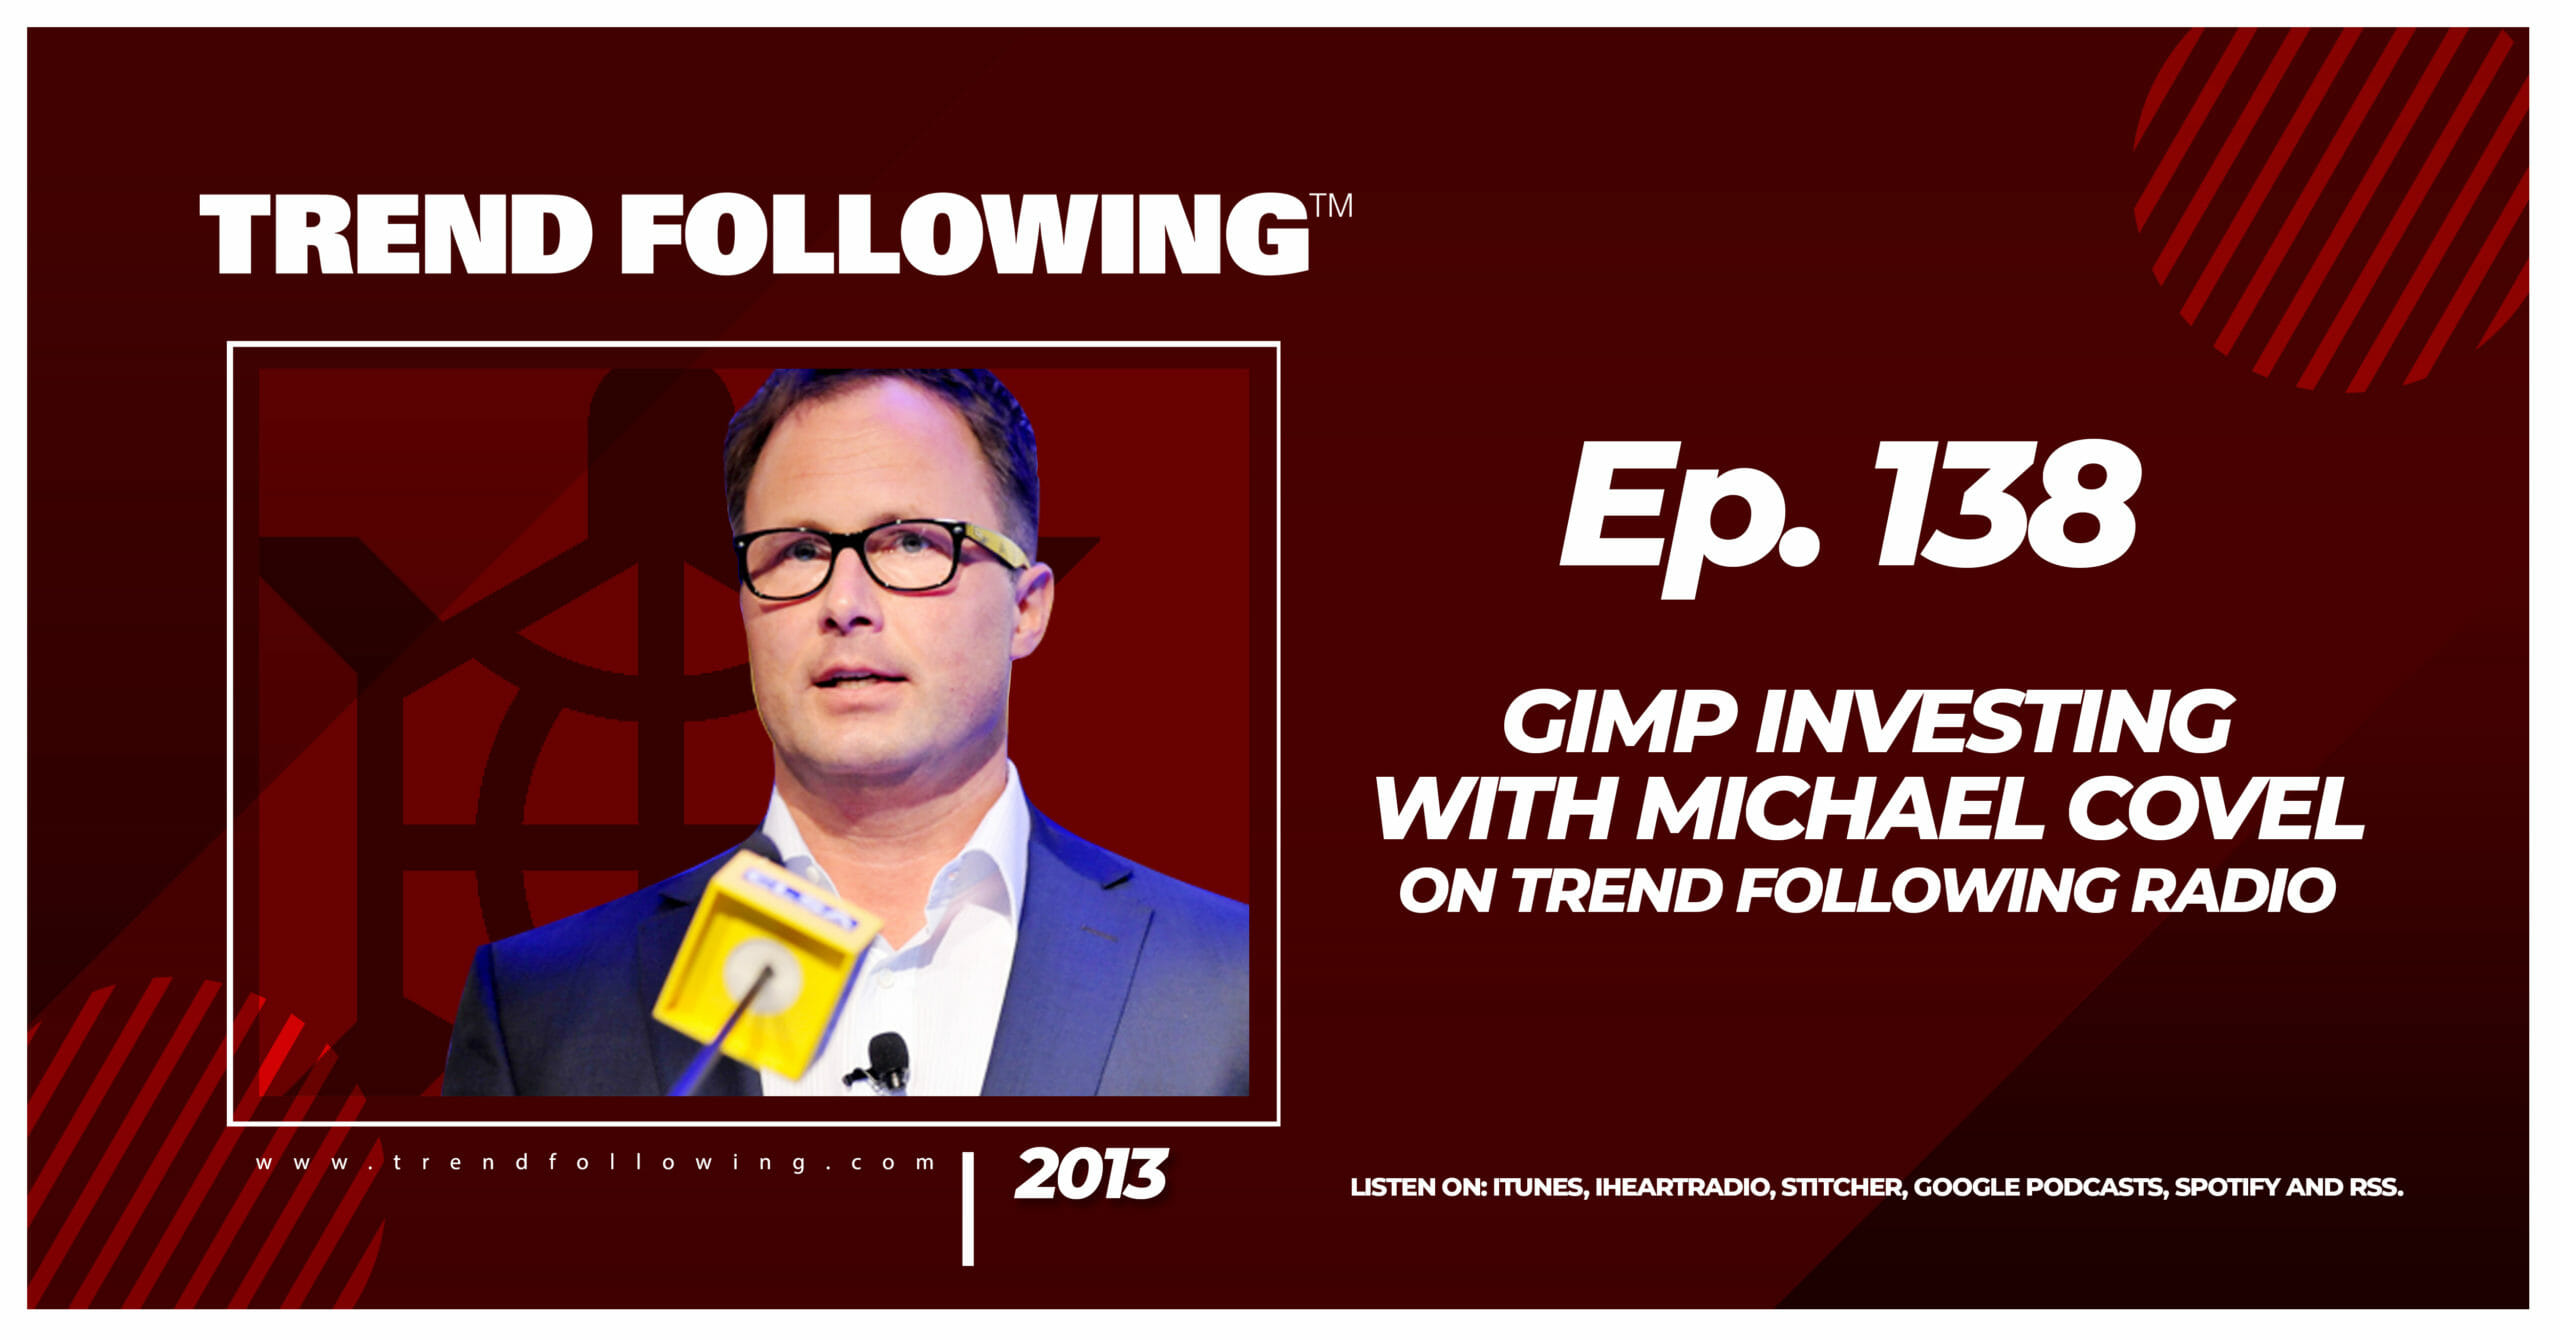 Gimp Investing with Michael Covel on Trend Following Radio